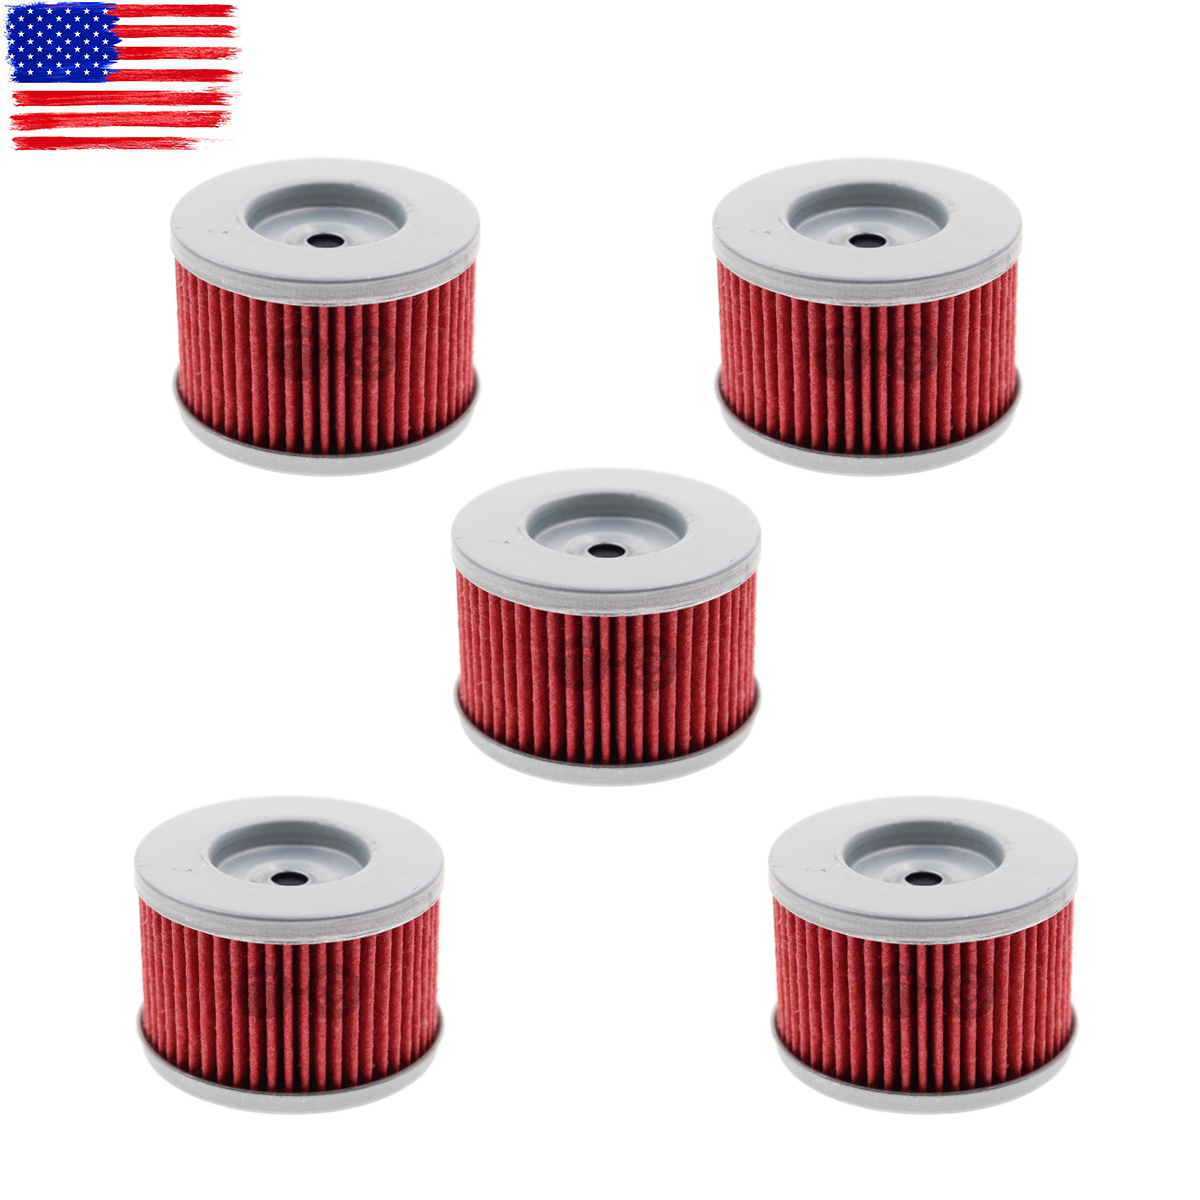 HONDA FOURTRAX 300 1988-2000 REPLACEMENT OIL FILTER